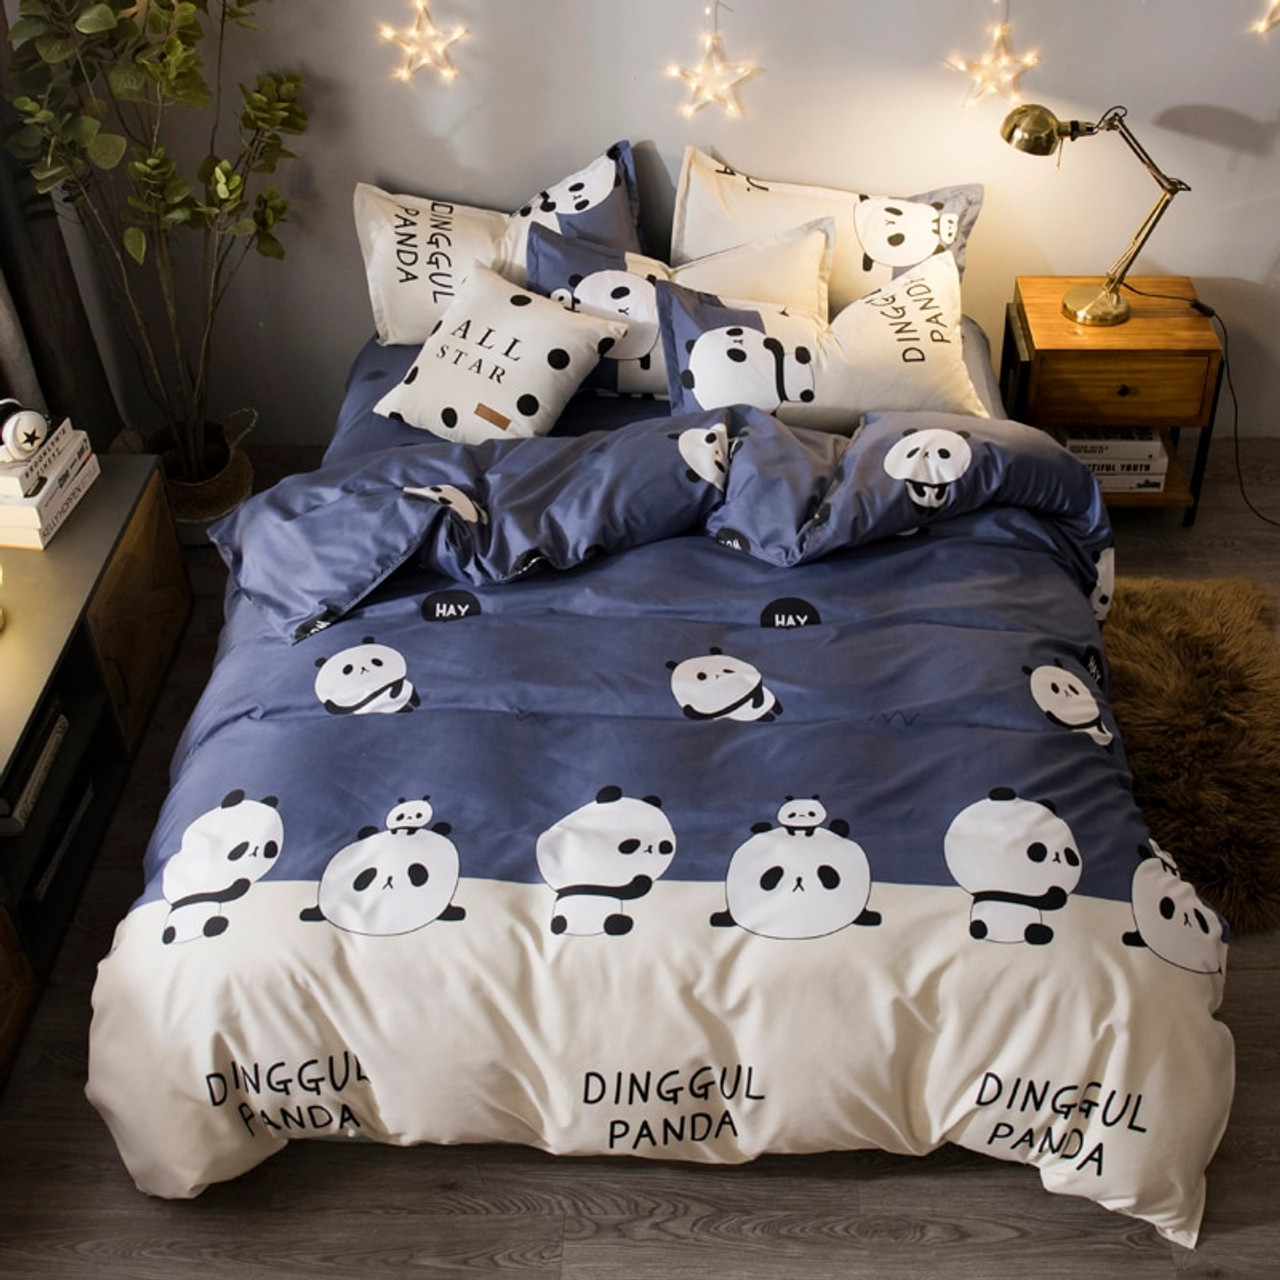 Helpful Bedding Set Duvet Cover Bed Sheet Pillowcase Bedlinen Bedclothes Flat Sheet Furniture